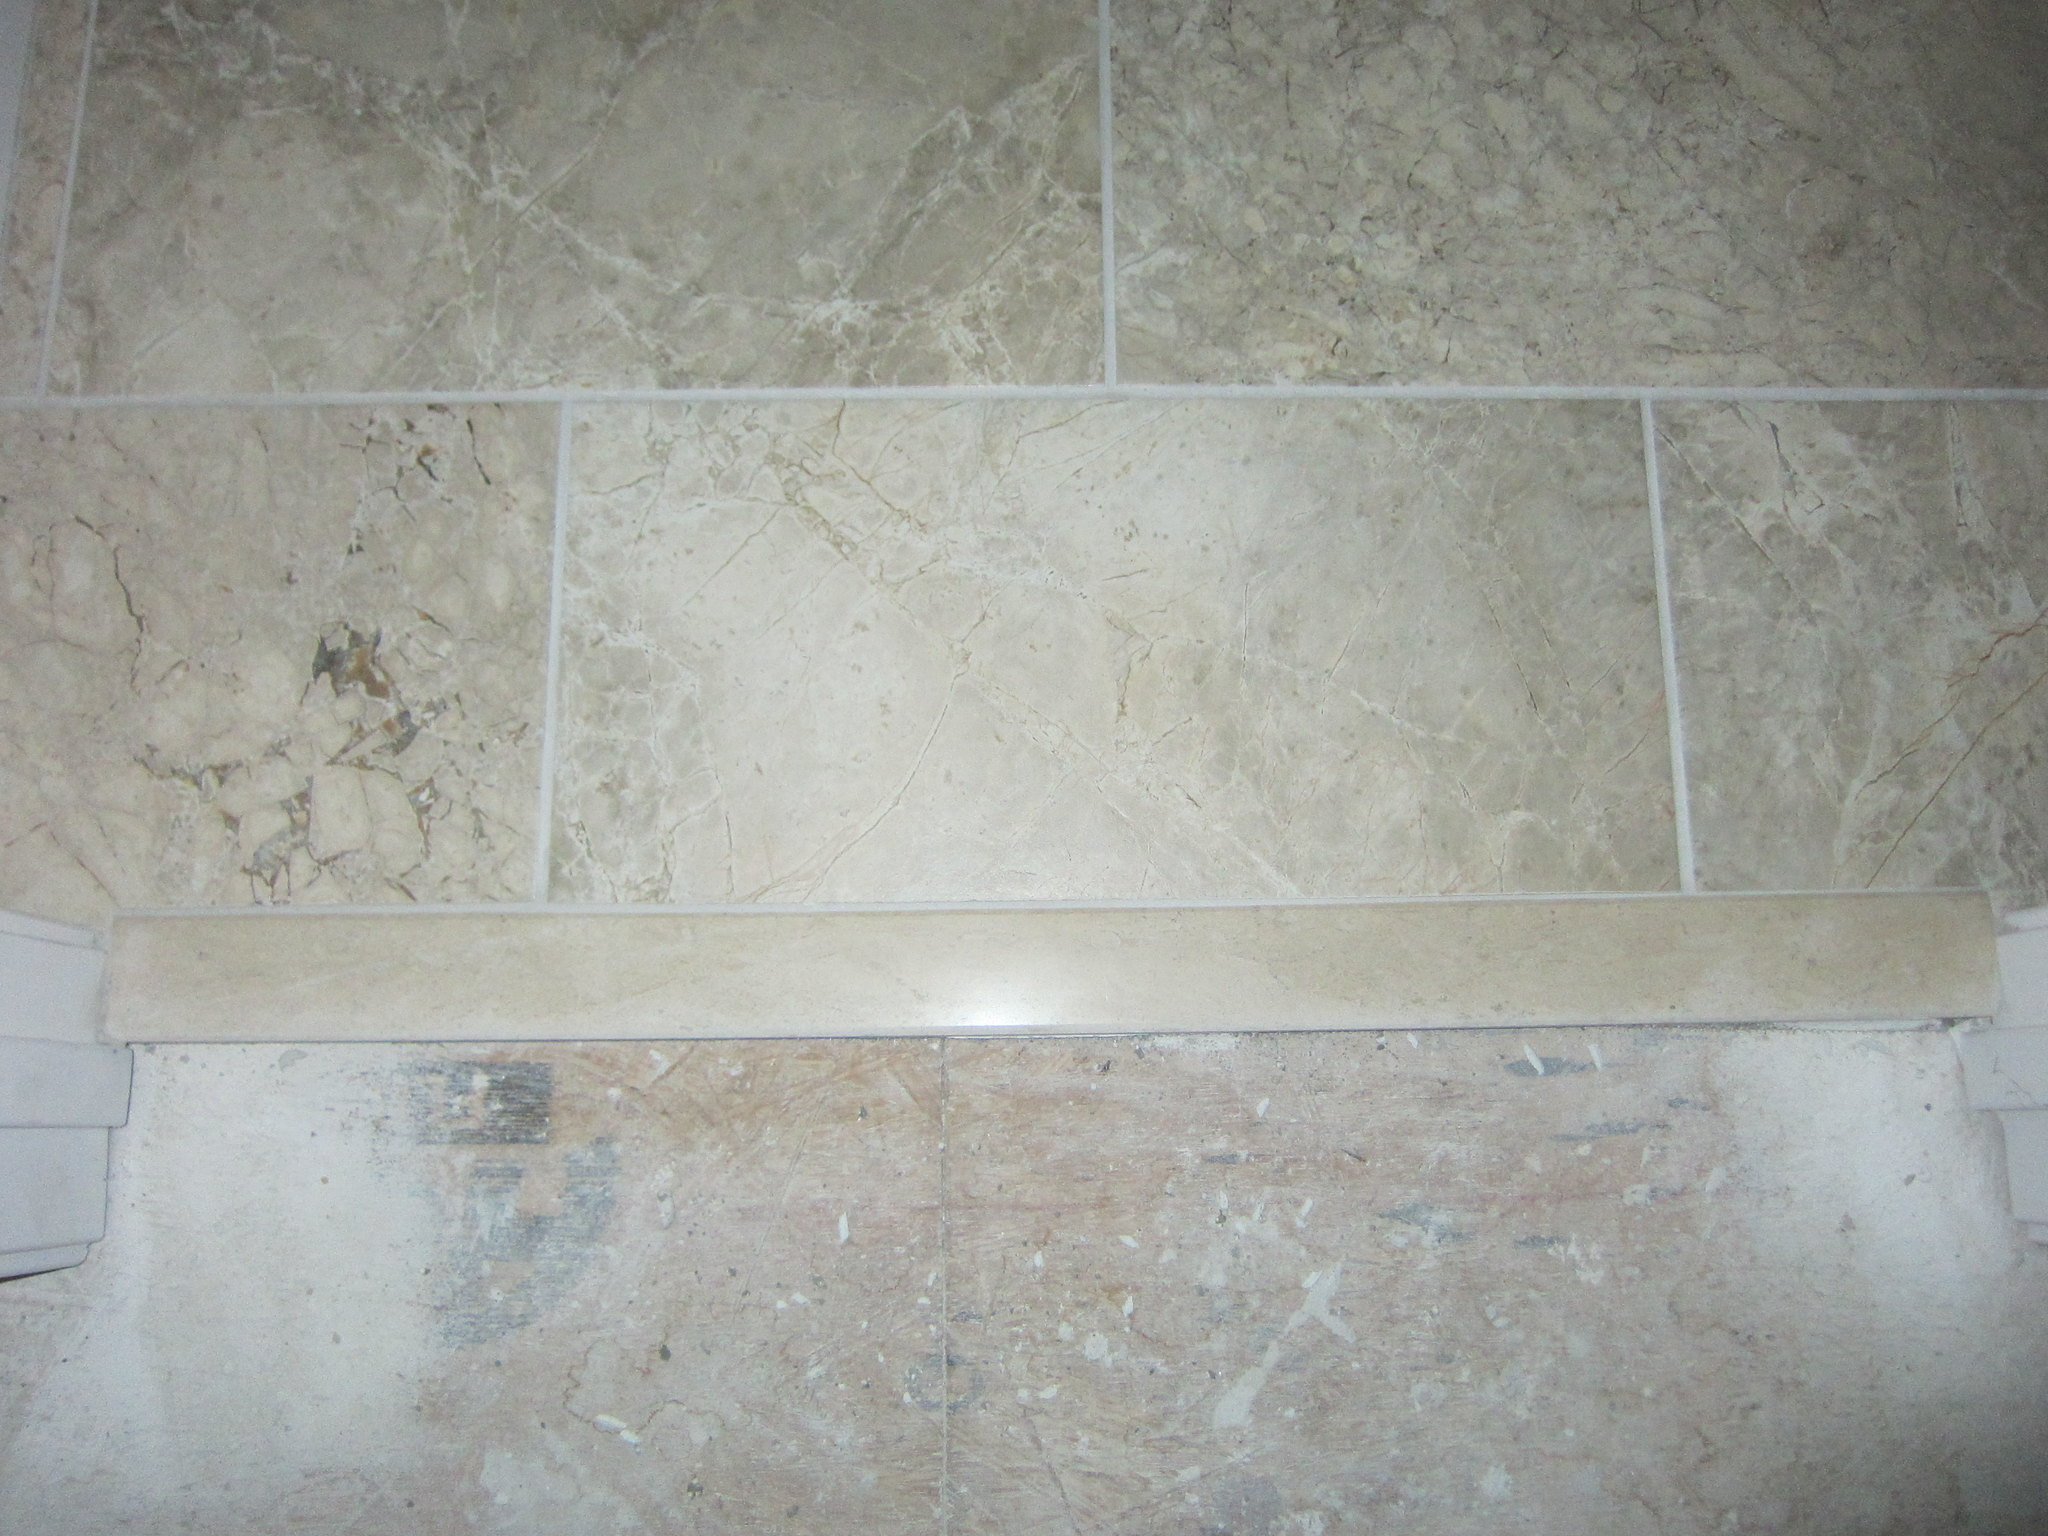 Marble threshold by jmrodri flickr photo sharing for Marble threshold bathroom